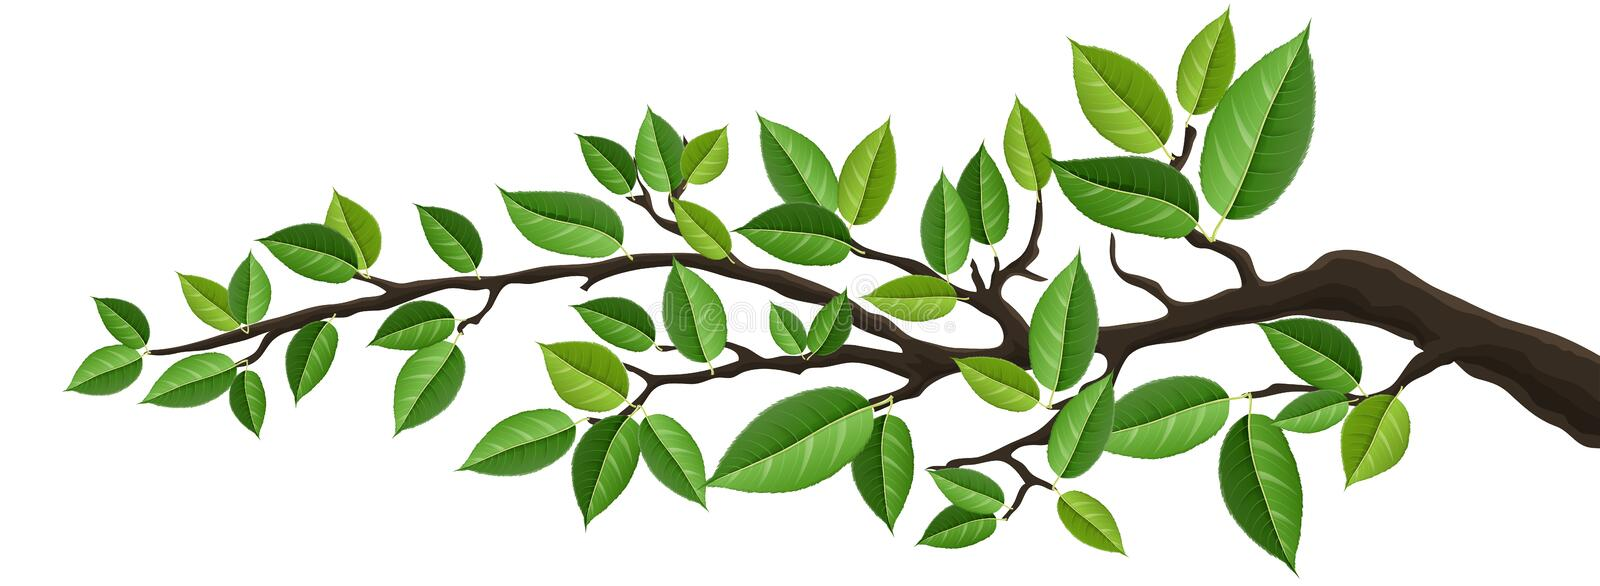 Horizontal banner with isolated tree branch with green leaves royalty free illustration